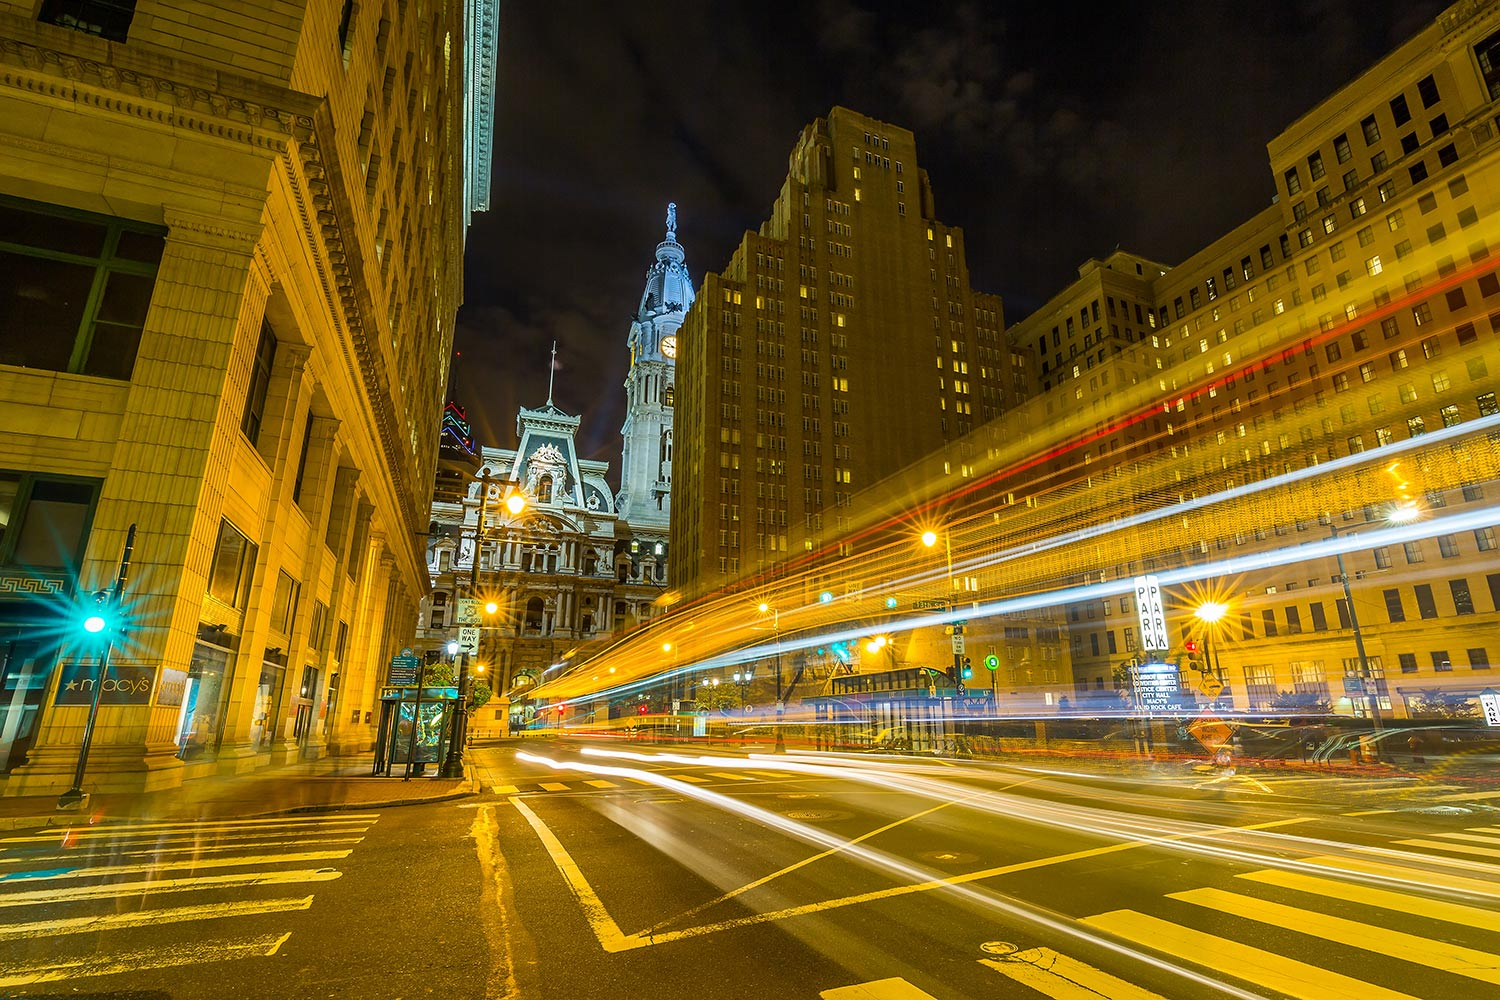 ..........and now for something completely different.  Long exposure of a city bus passing by, downtown Philly.